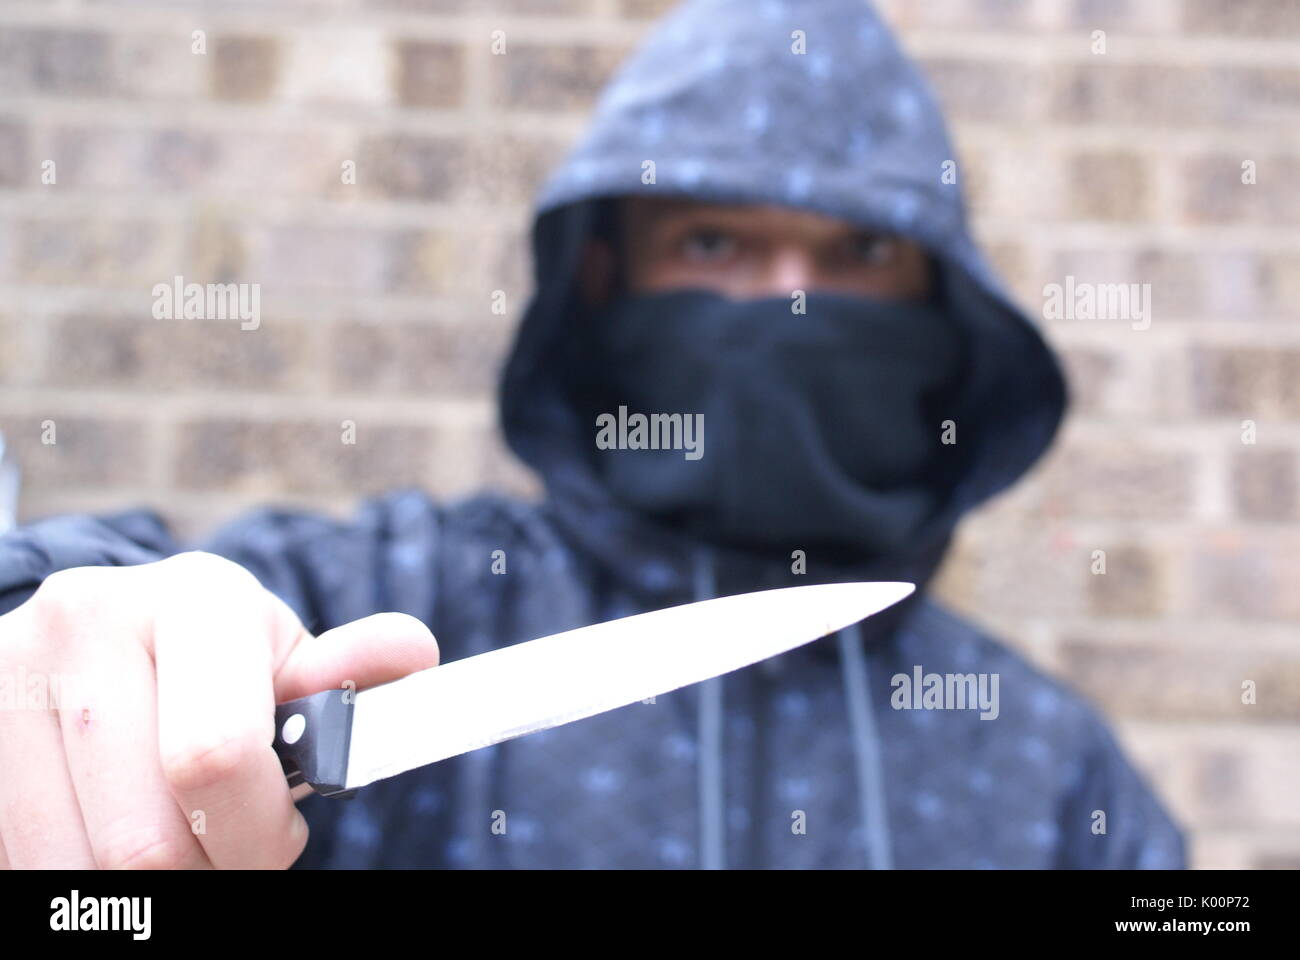 knife crime, teenagers carrying knife, stop and search - Stock Image